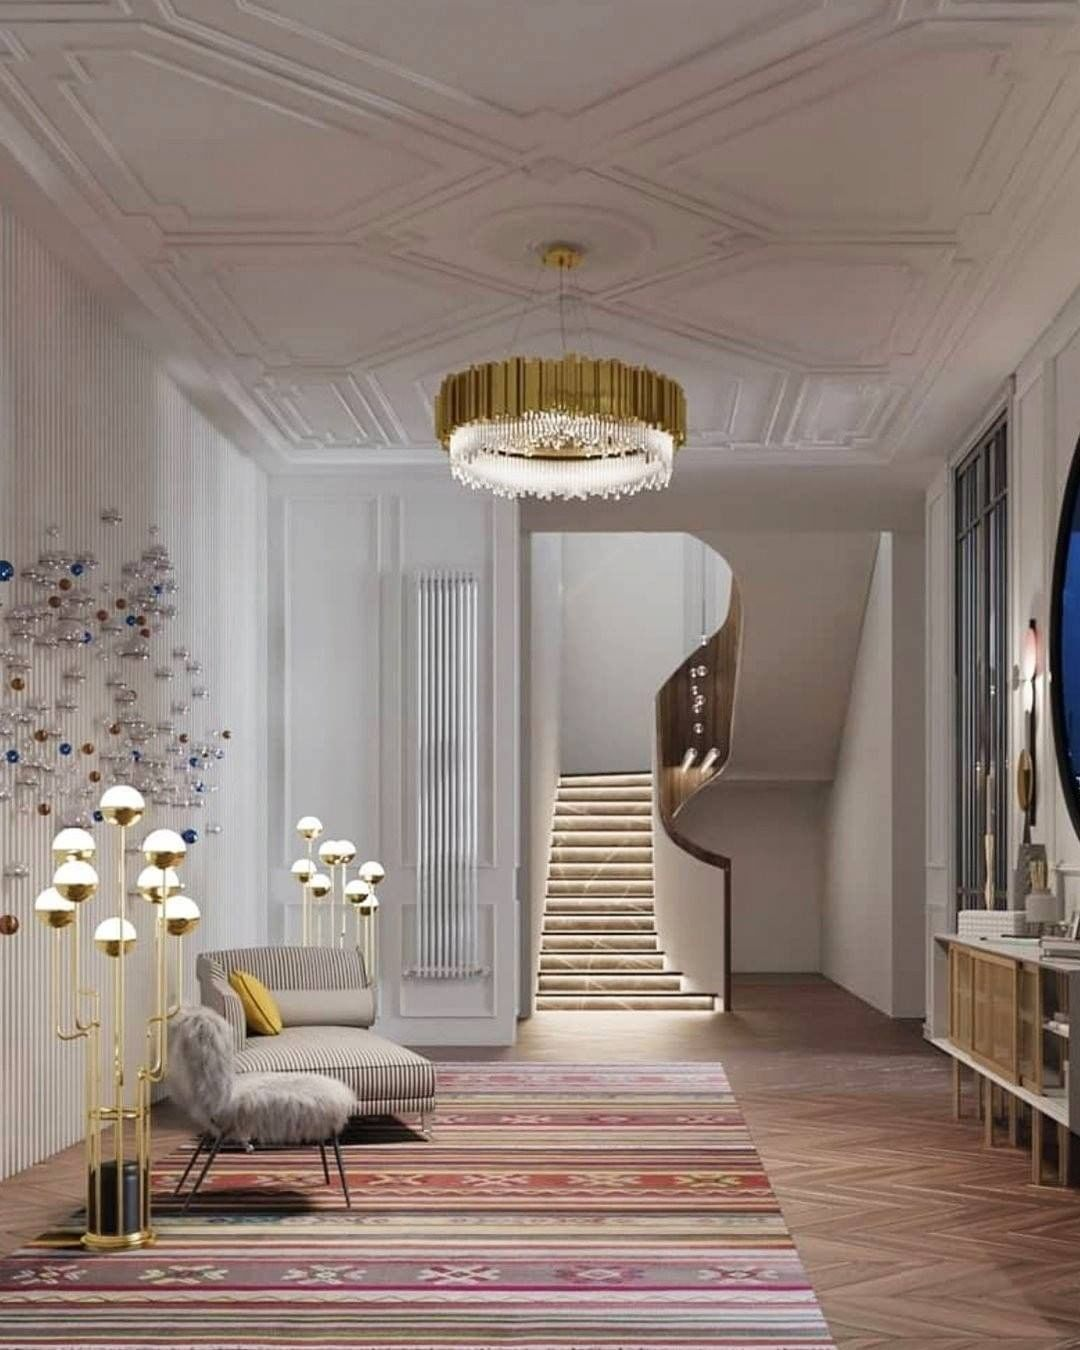 Best Interior Designers On Instagram Empire Oval Suspension By Luxxumoderndesignliving Is A In 2020 Top Interior Designers Hall Design Interior Design Inspiration